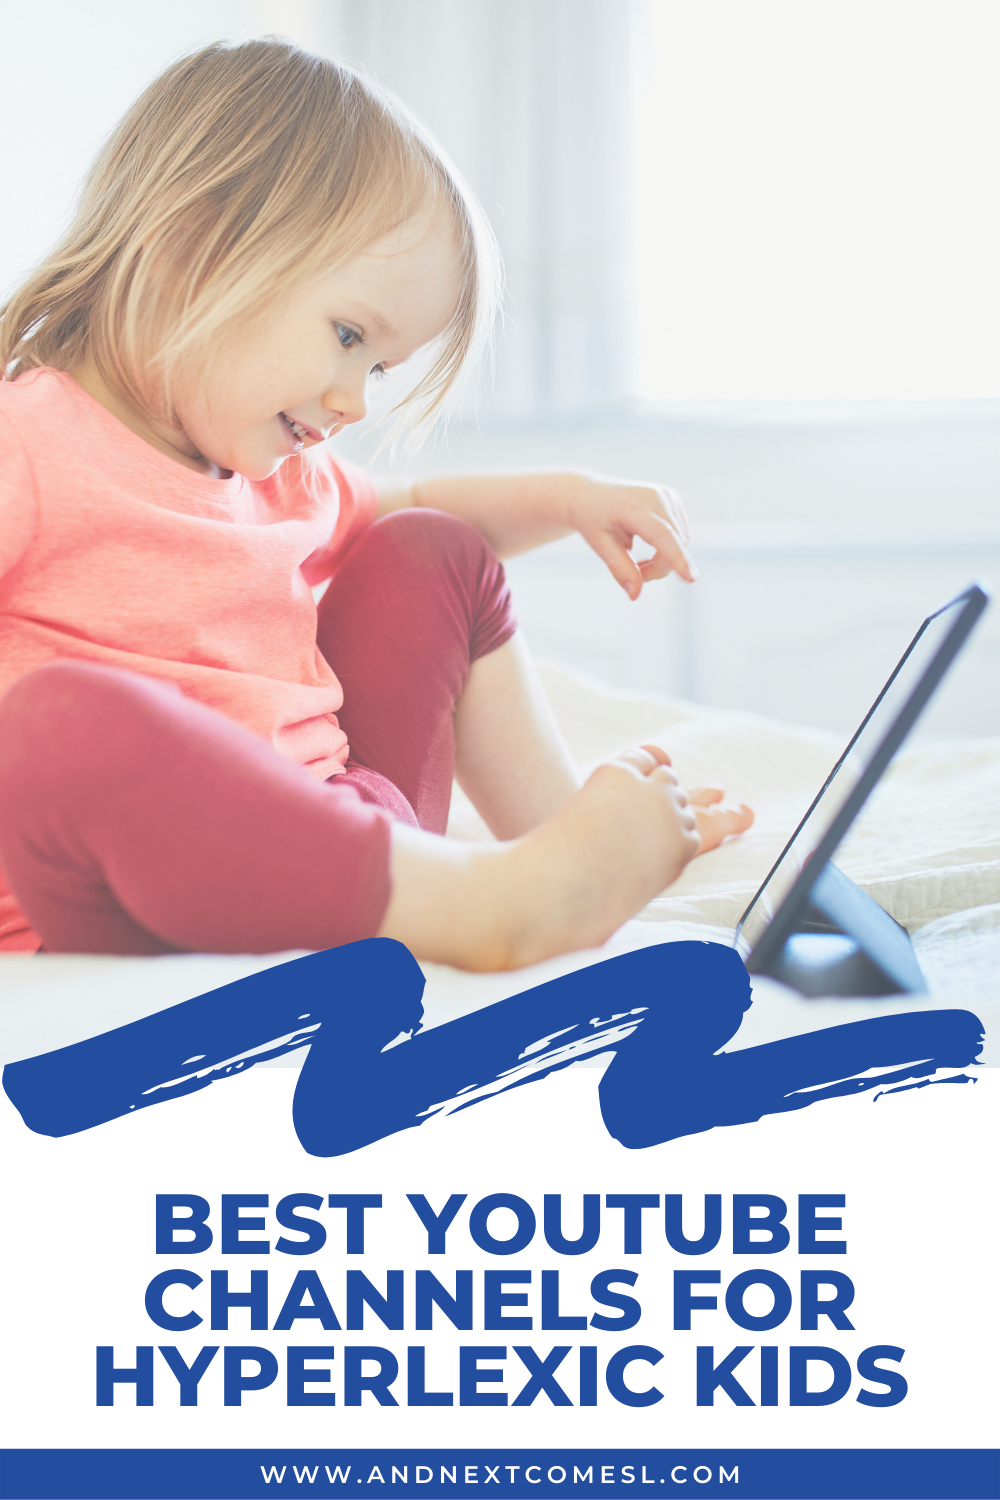 The best YouTube channels for kids with hyperlexia